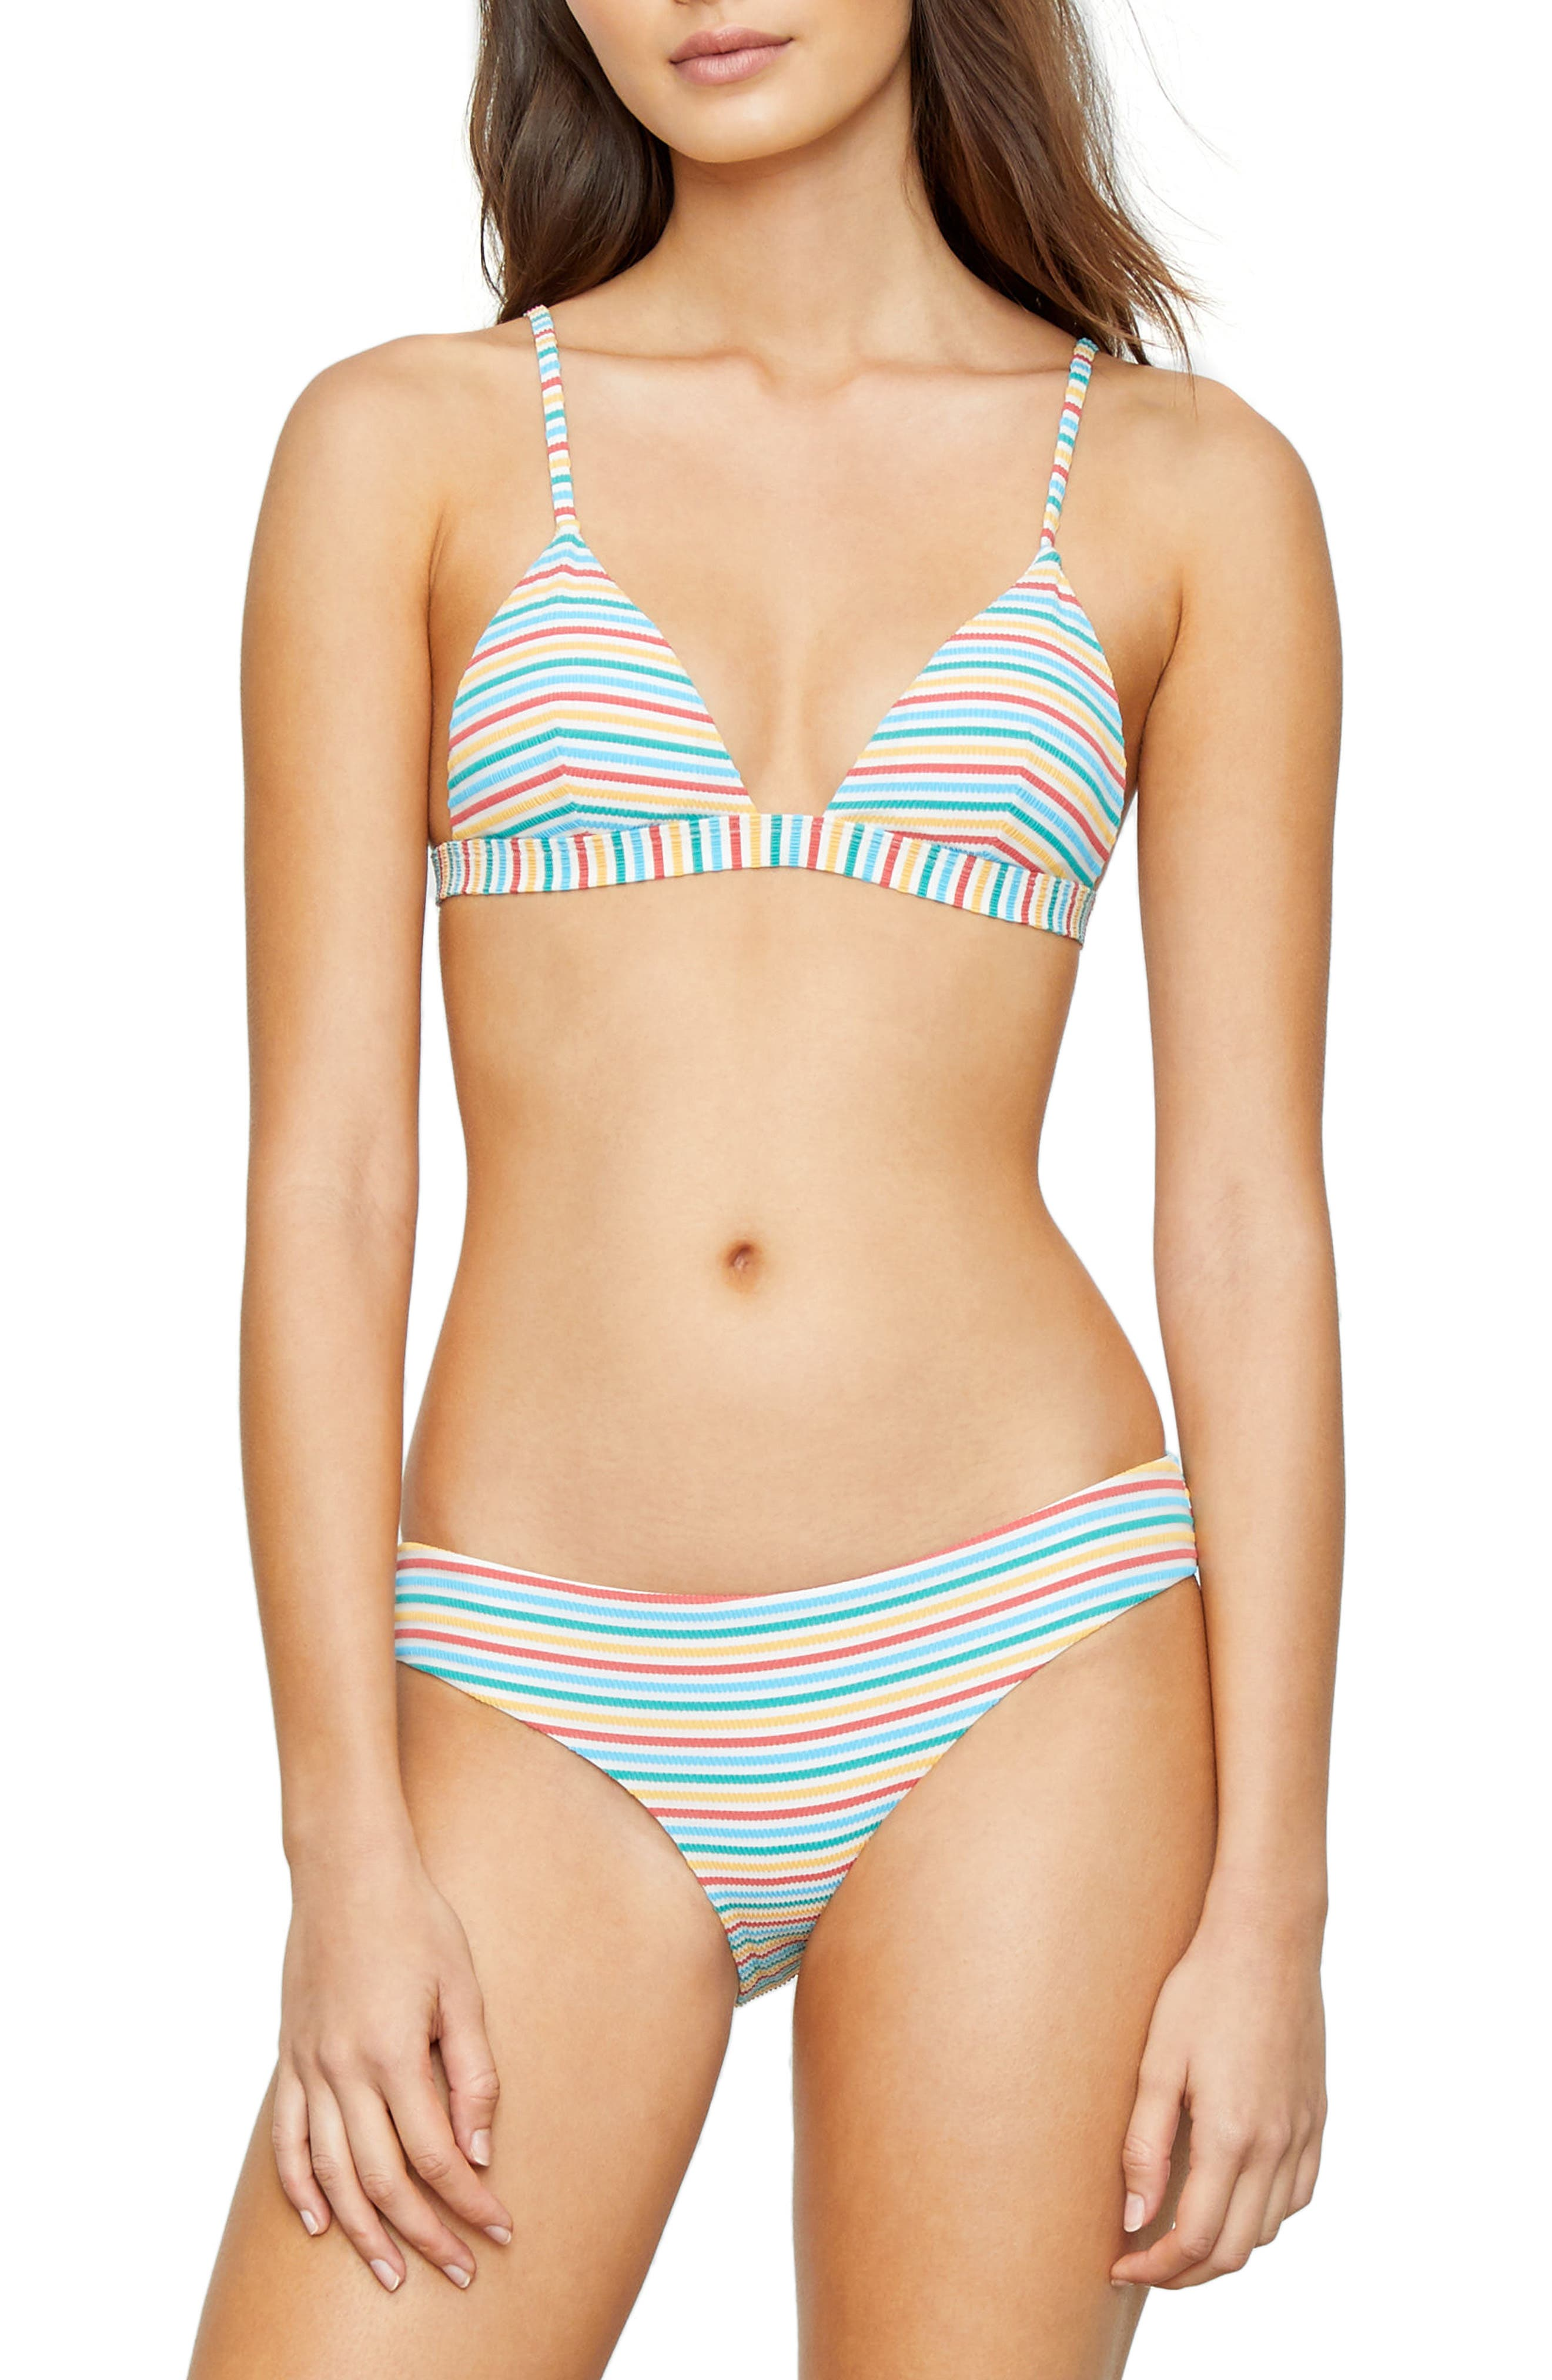 Stripe Bikini Top,                             Alternate thumbnail 7, color,                             700